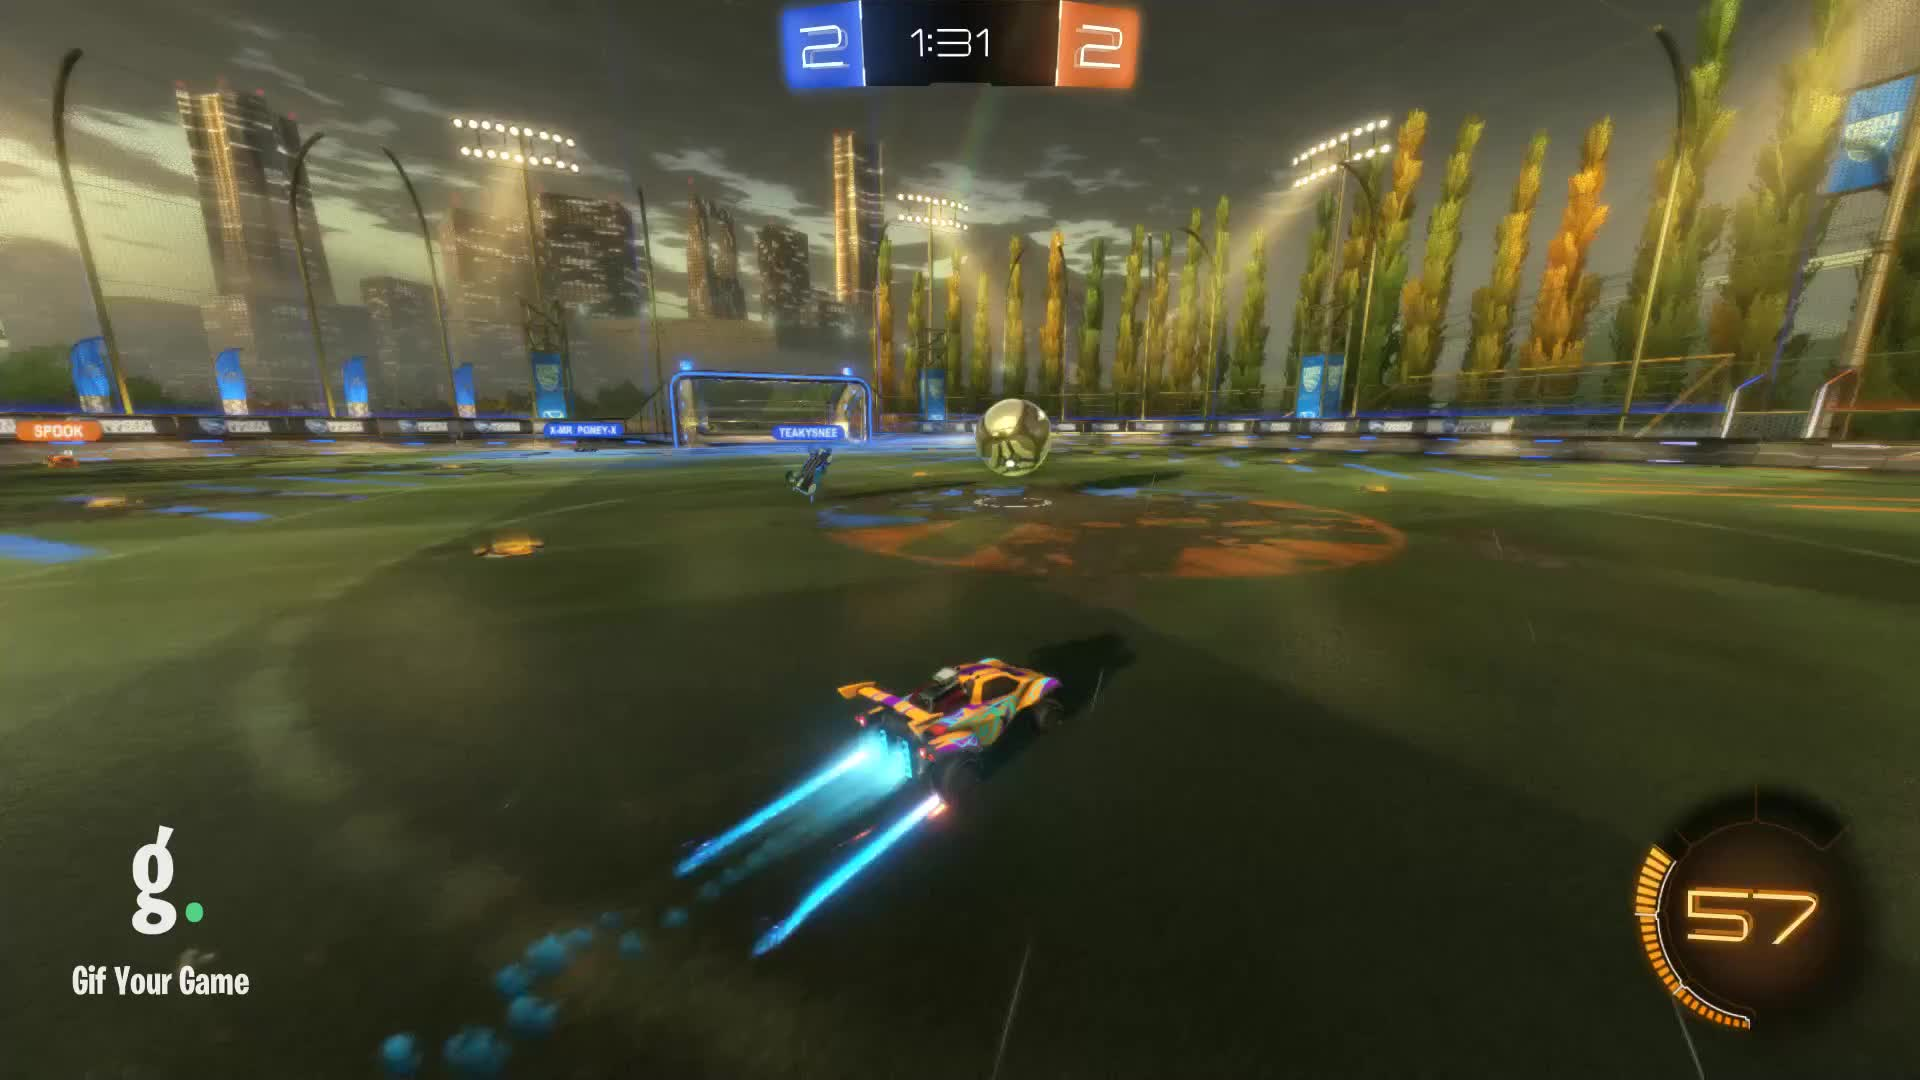 Gif Your Game, GifYourGame, Goal, Rocket League, RocketLeague, 🎬 Stitched 2 clips 9/14/2019 GIFs